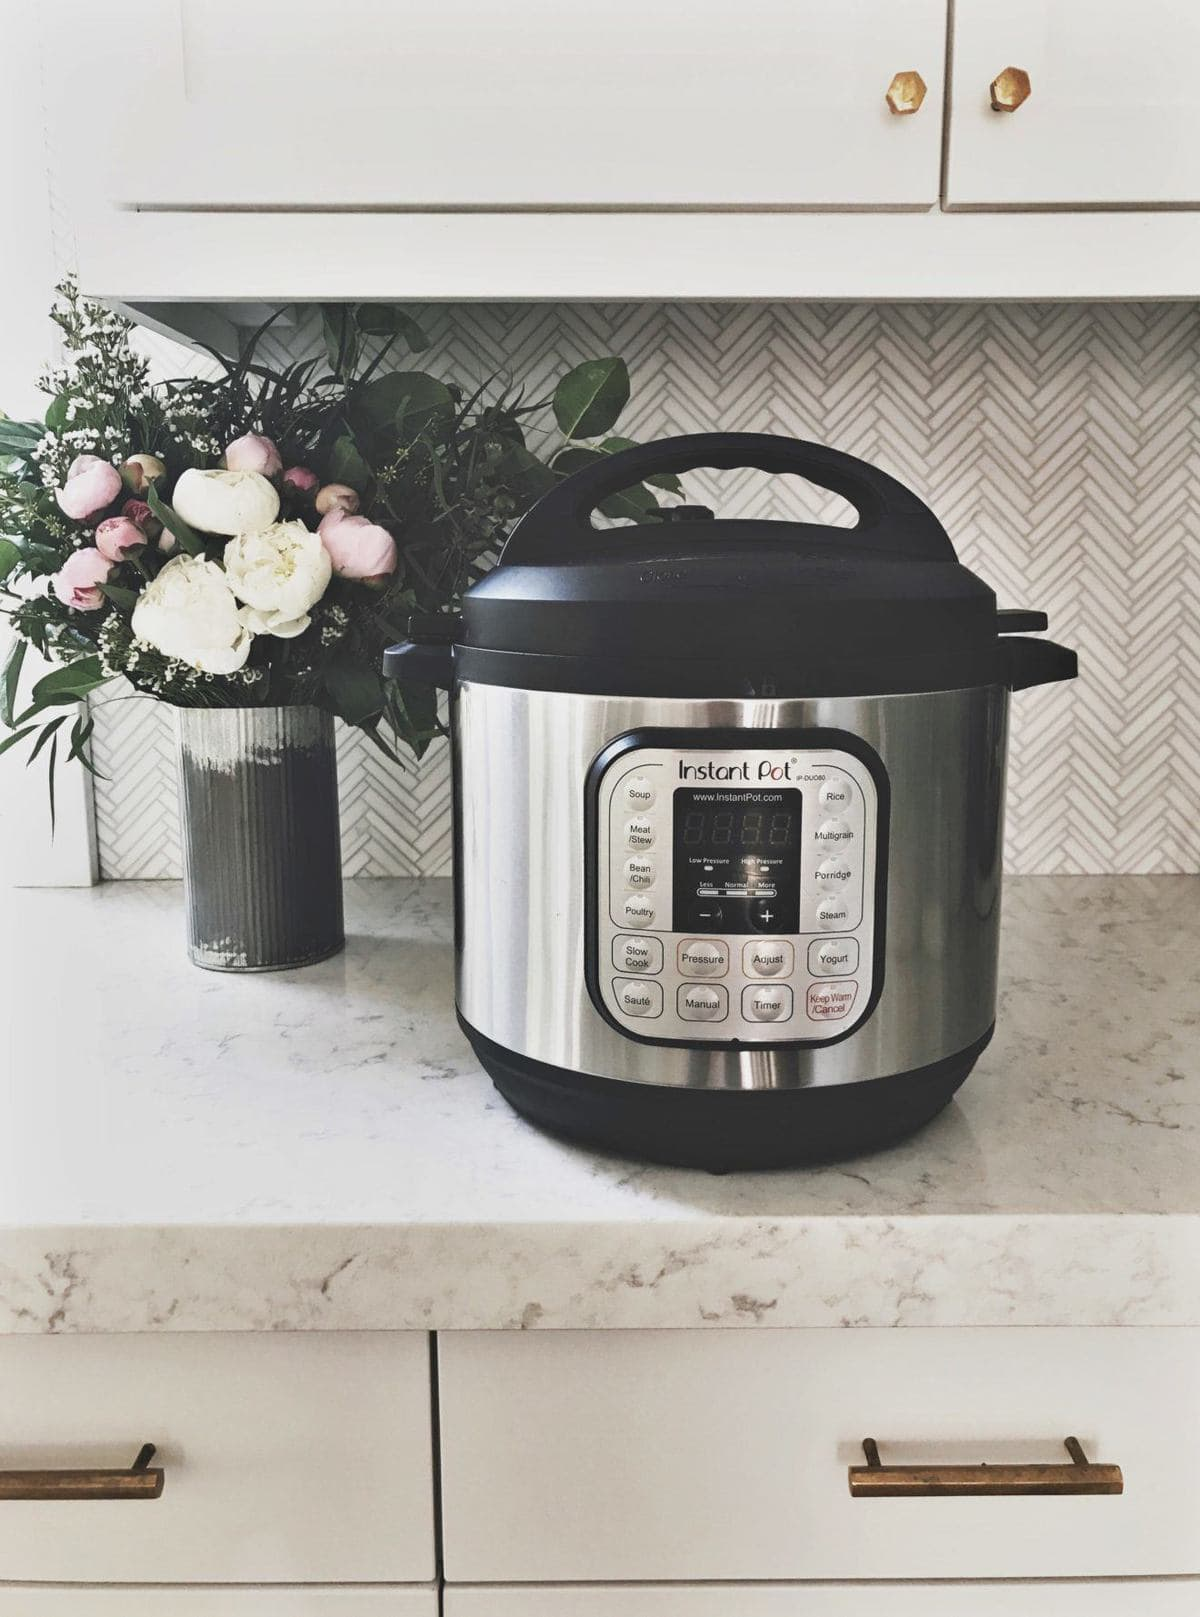 instant pot amazon prime day deal